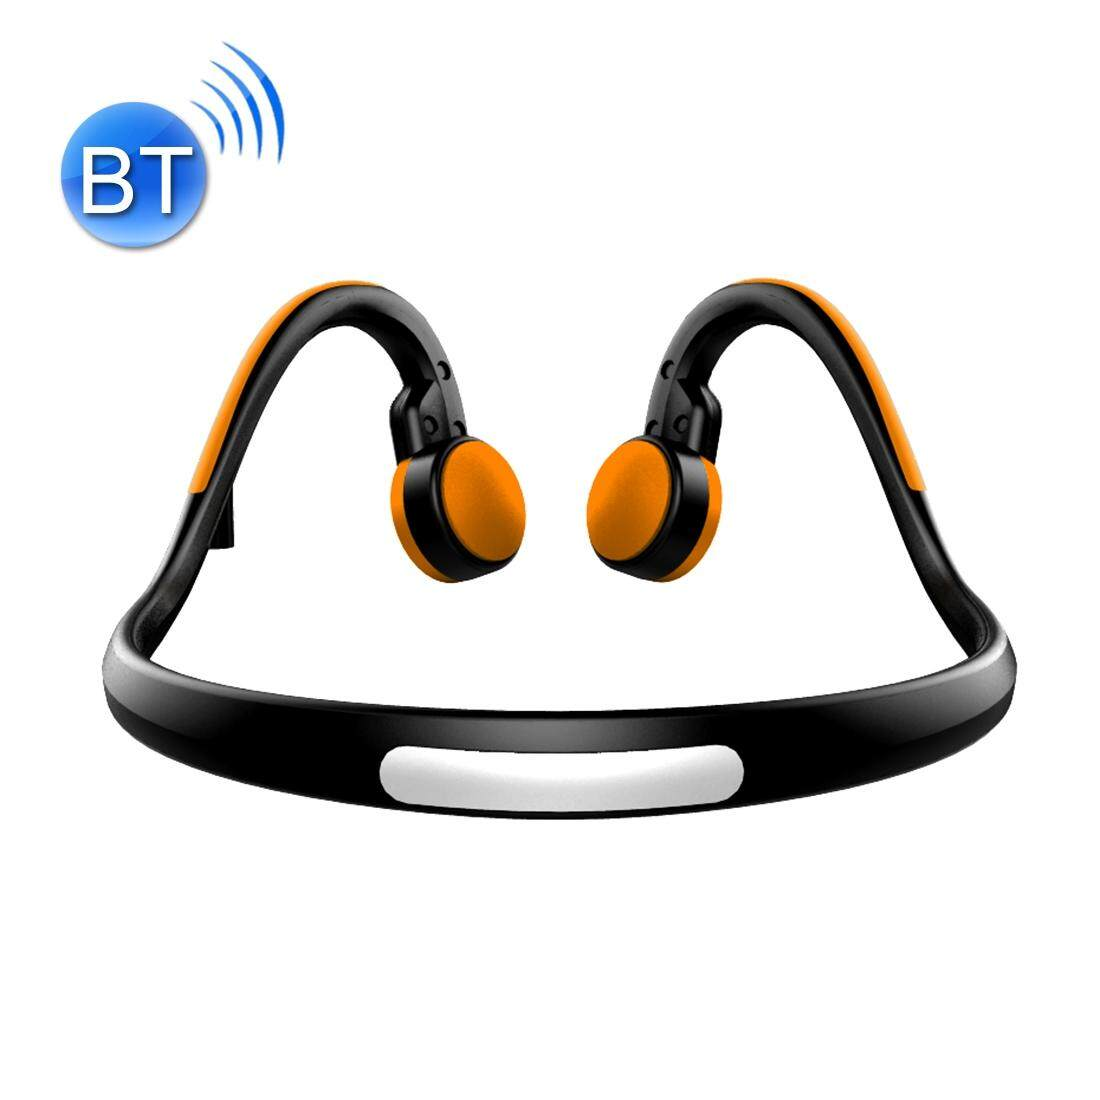 BT-BK Bone Conduction Bluetooth V4.1+EDR Sports Over the Ear Headphone Headset with Mic, For iPhone, Samsung, Huawei, Xiaomi, HTC and Other Smart Phones or Other Bluetooth Audio Devices(Orange)